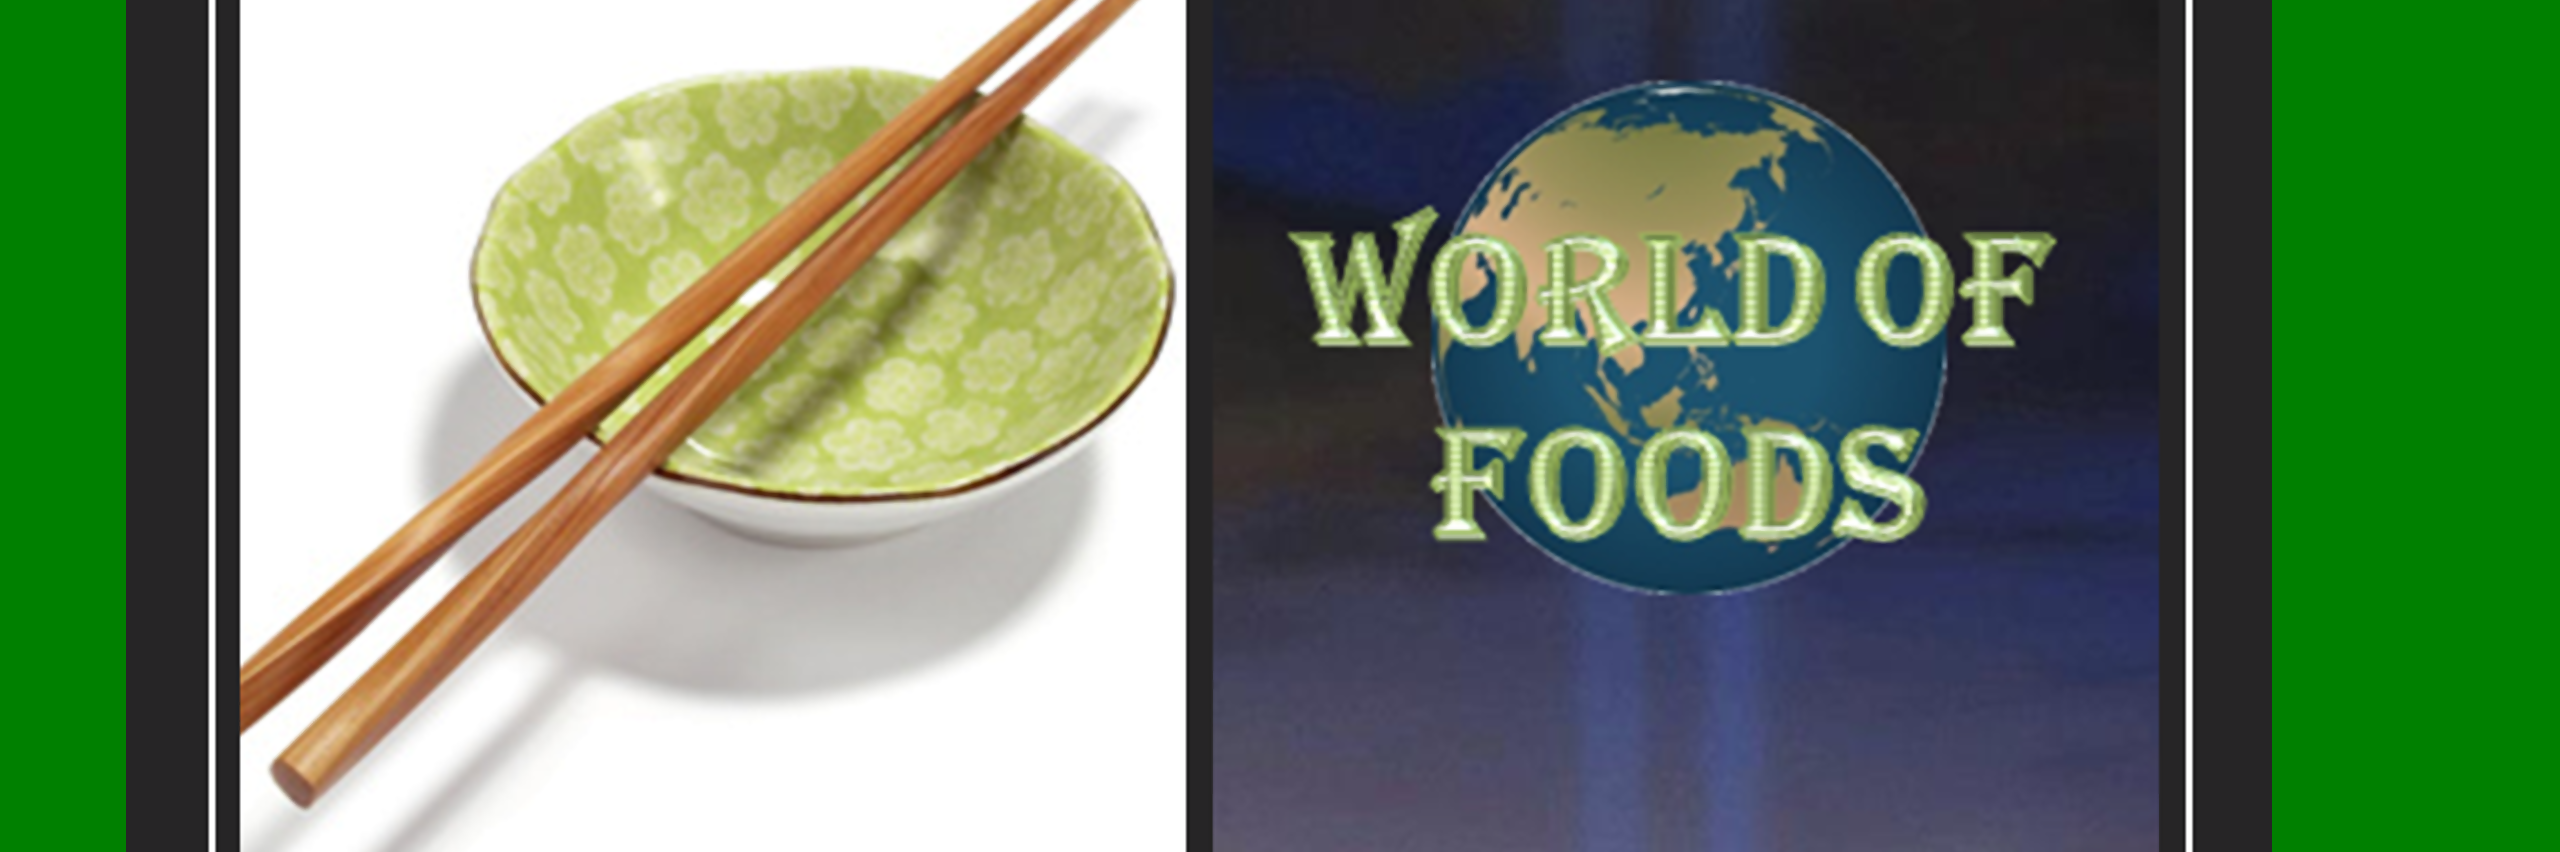 World of Foods